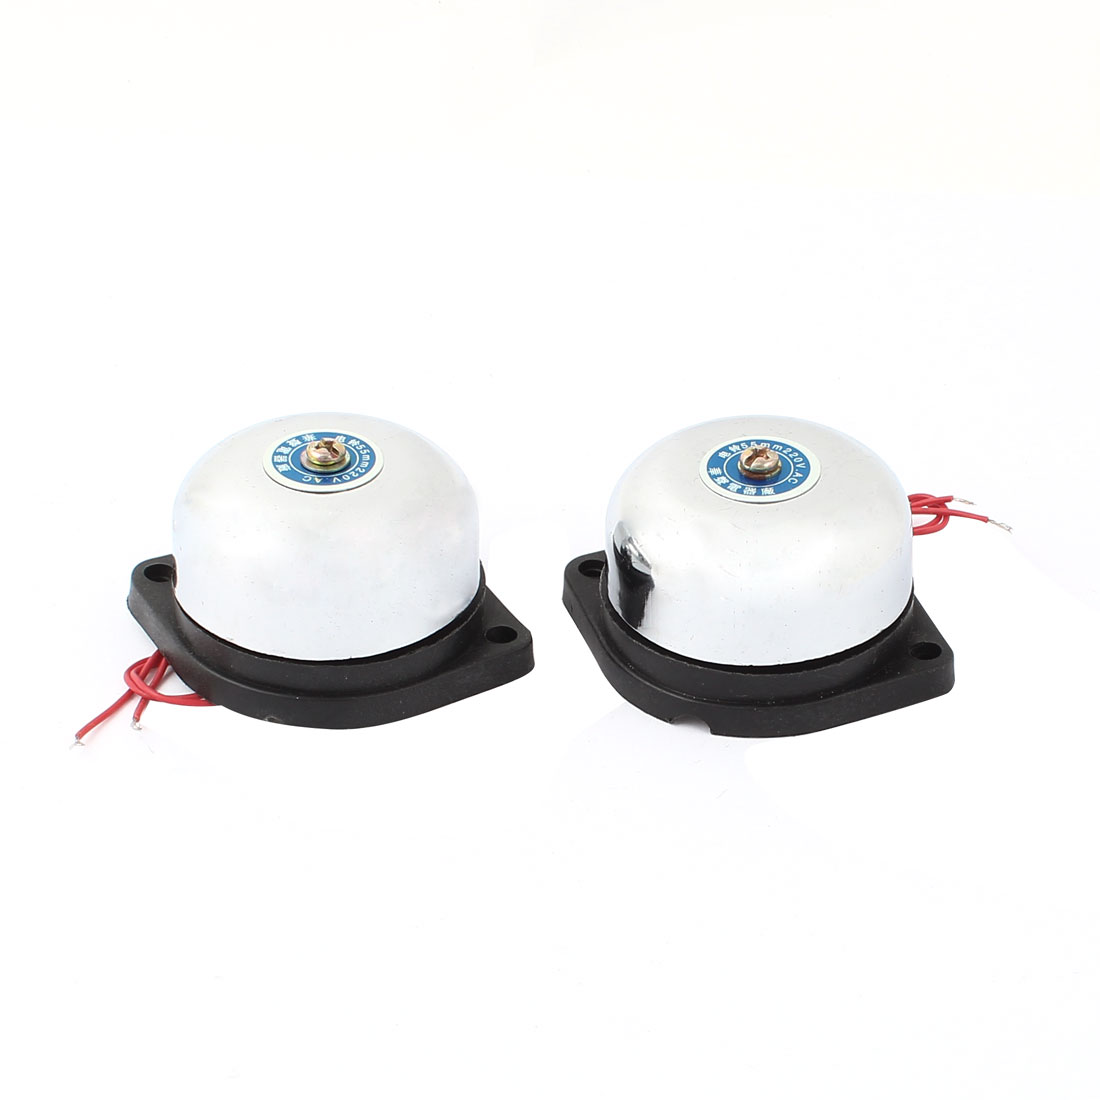 2 Pcs AC 220V School Factory Fire Alarm Electric Bell 55mm Dia Silver Tone Black